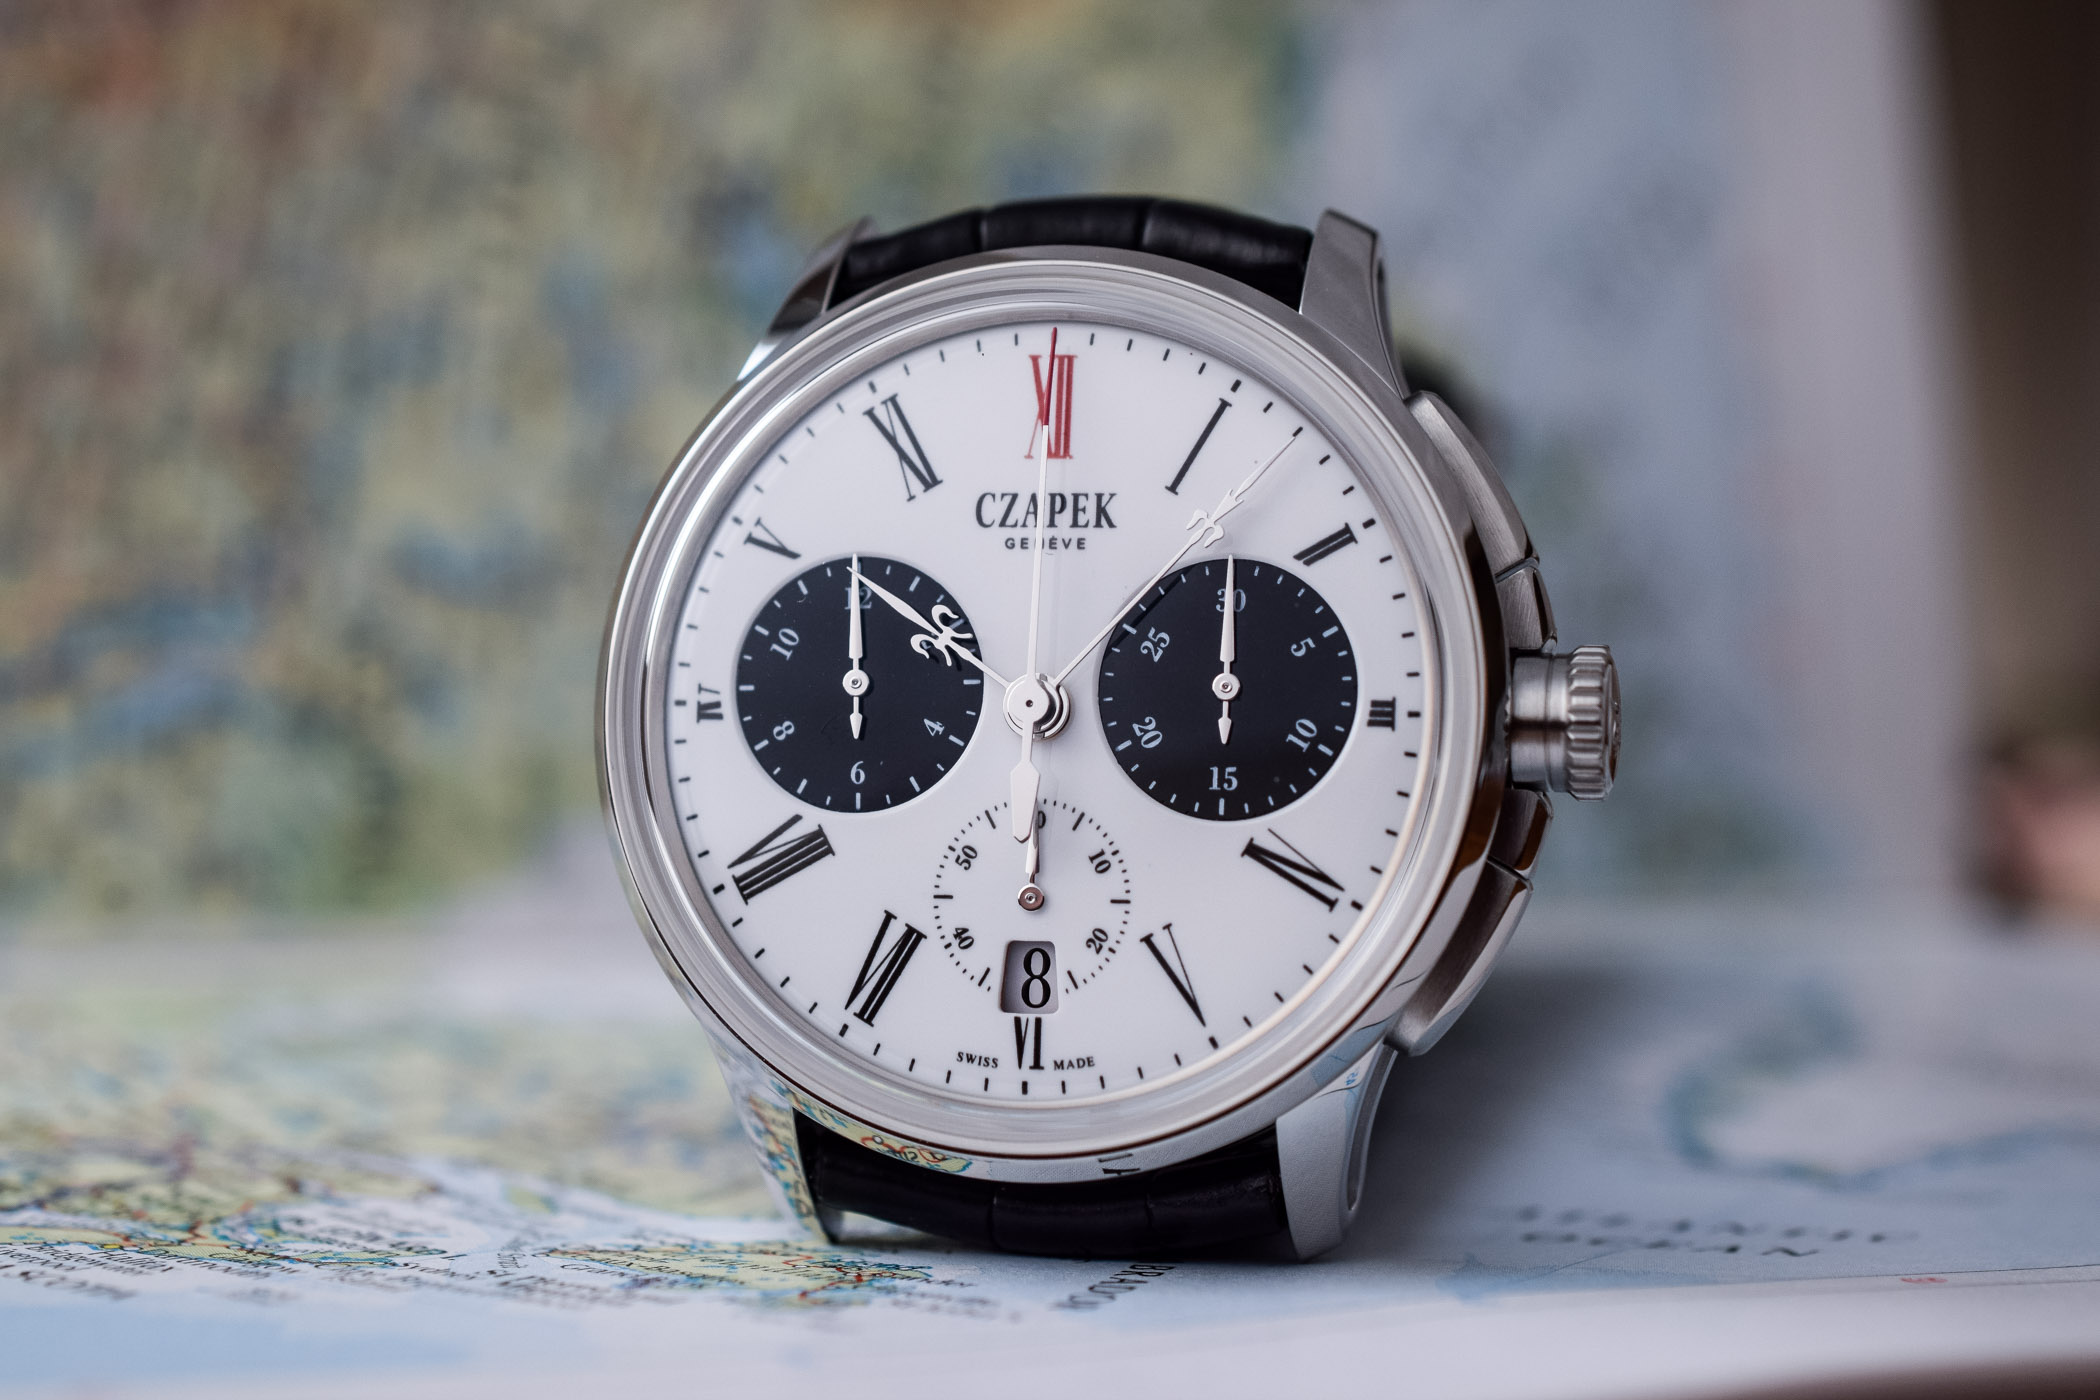 Baselworld 2019 - Czapek Faubourg de Cracovie Chronograph Tao With Panda Enamel Dial - 3